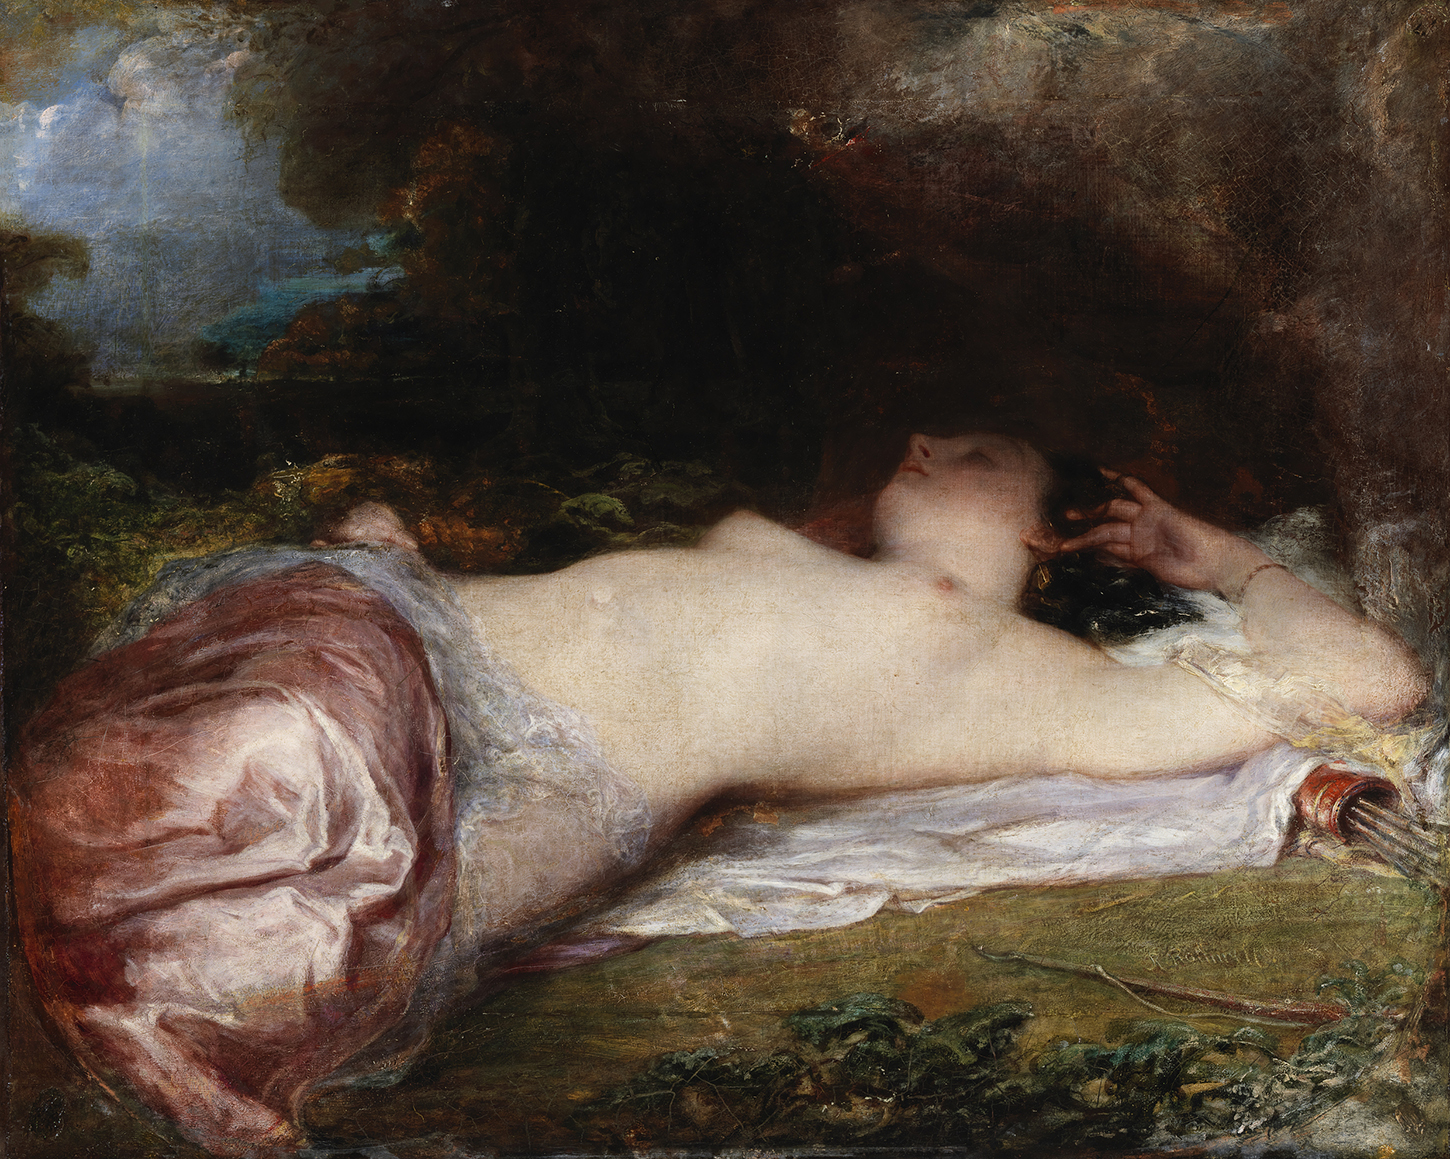 An oil painting of a female figure reclining on grass. Her arm is stretched behind her head, and she is half-covered by silken fabric. Under her, a sheaf of arrows.